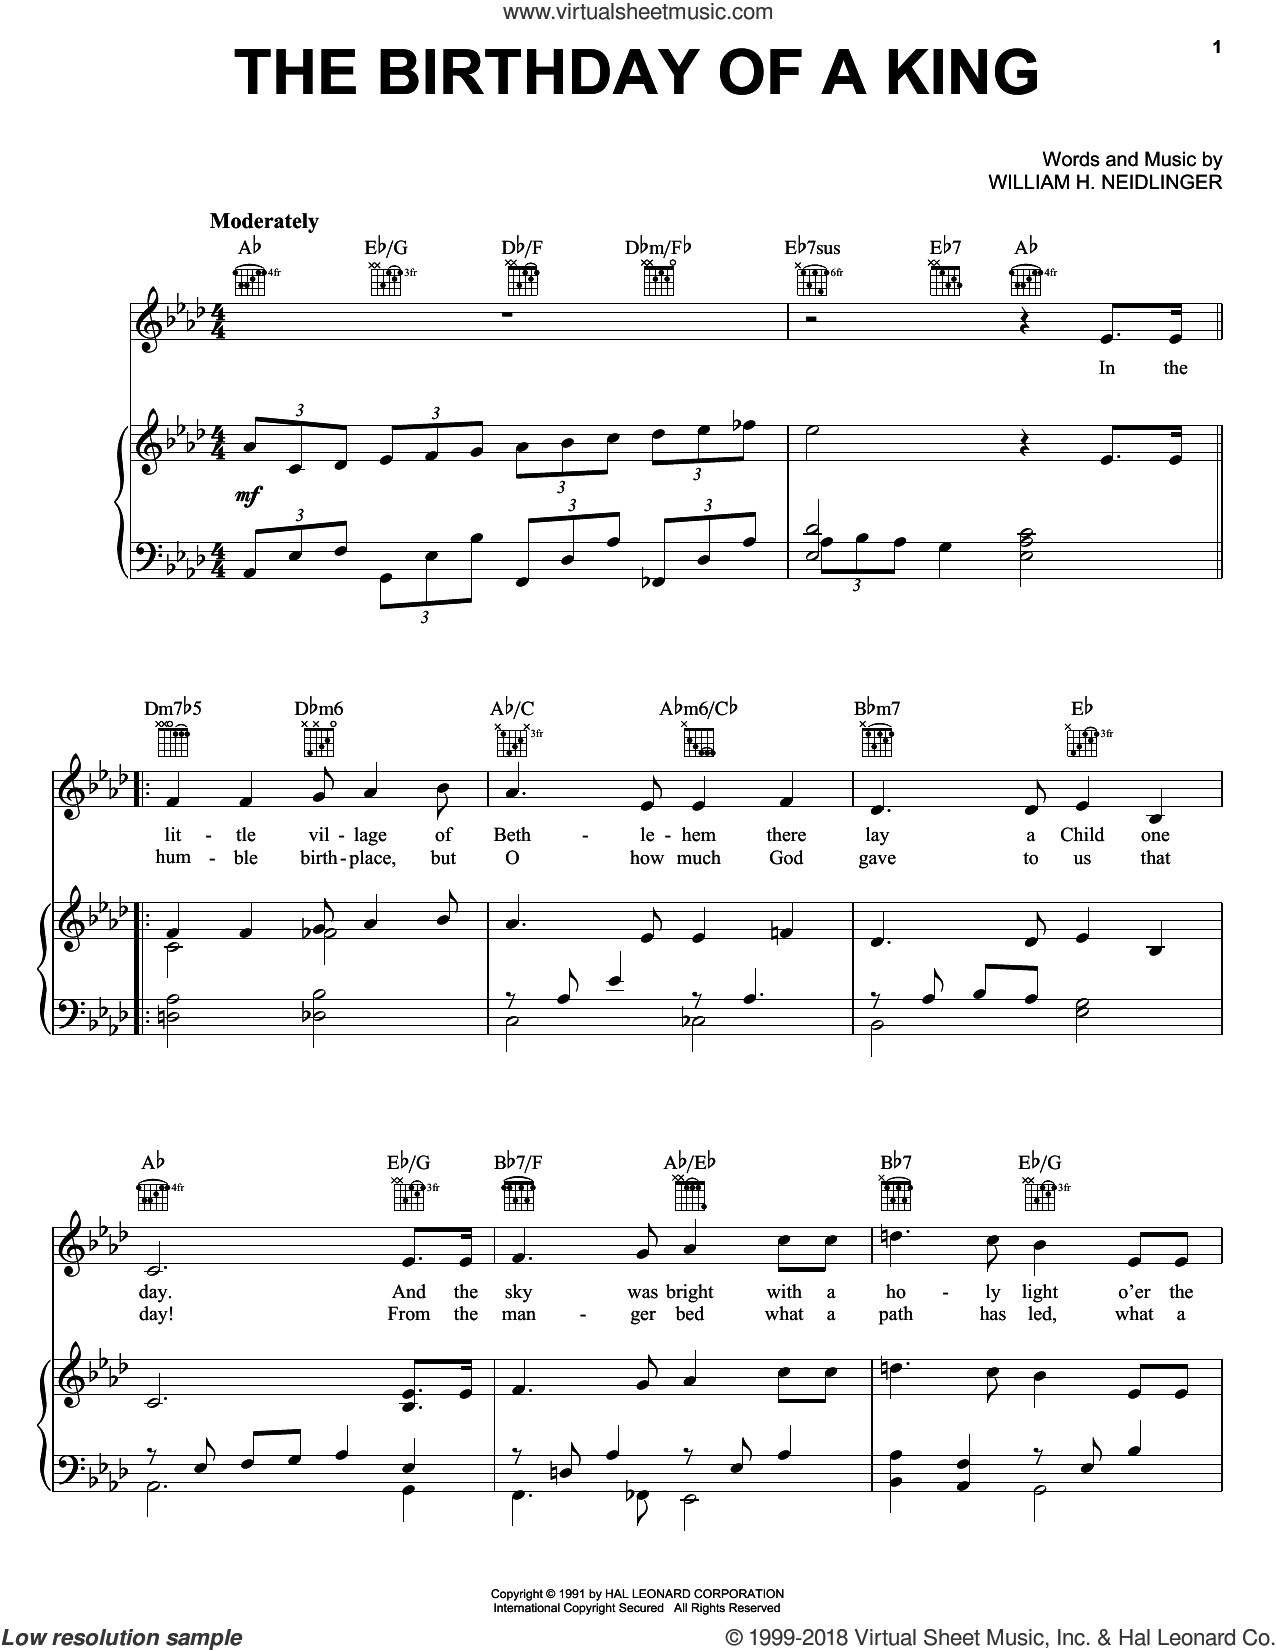 The Birthday of a King (Neidlinger) sheet music for voice, piano or guitar by William Harold Neidlinger. Score Image Preview.